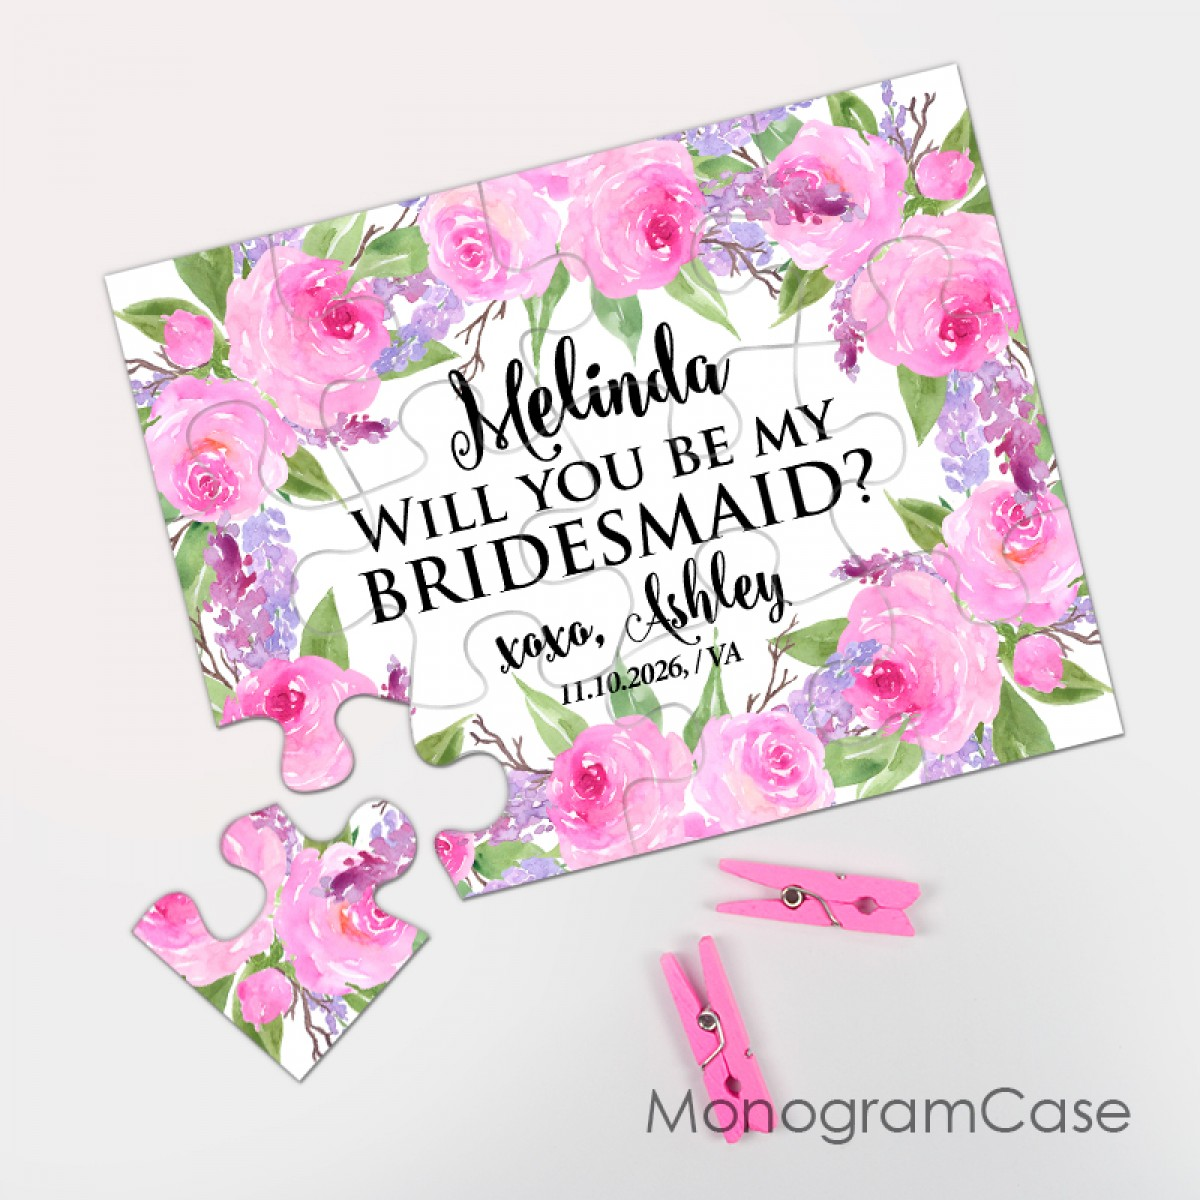 Fascinating Floral Wedding Will You Be My Bridesmaid Puzzle Bridesmaid Proposal Puzzle Will You Be My Bridesmaid Quotes Will You Be My Bridesmaid Cards Target inspiration Will You Be My Bridesmaid